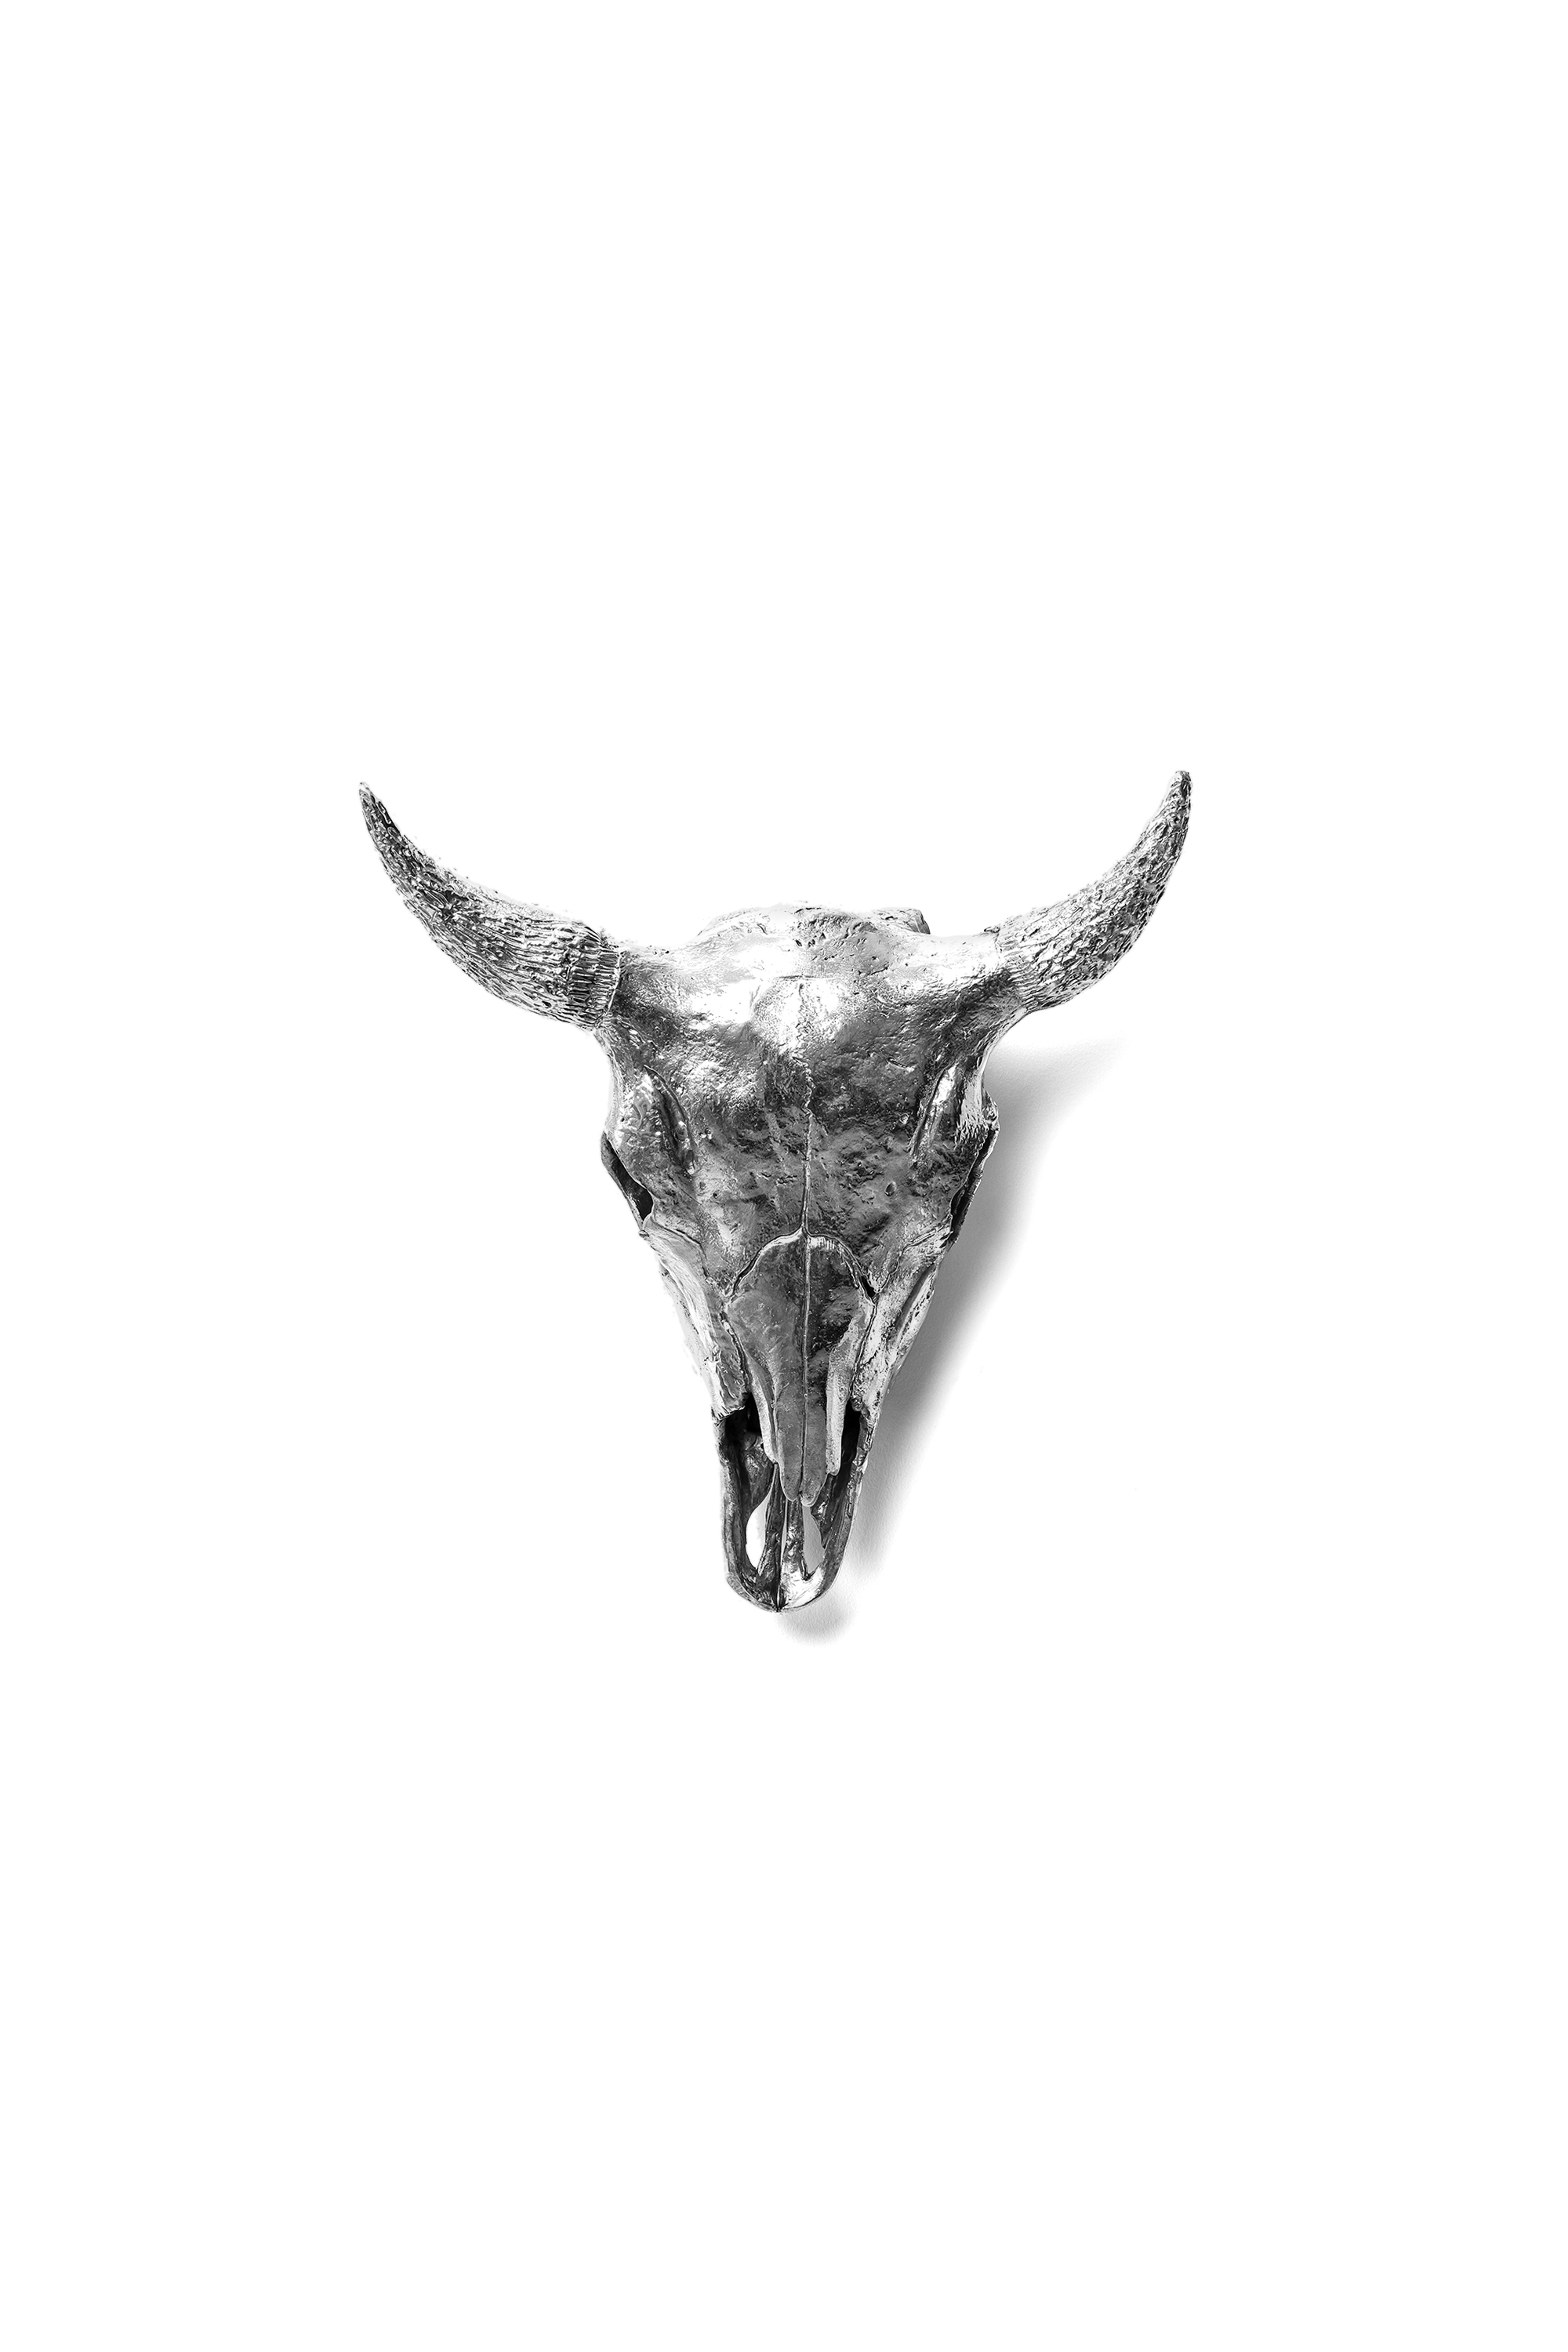 Diesel - 10899 WUNDERKAMMER,  - Home Accessories - Image 1